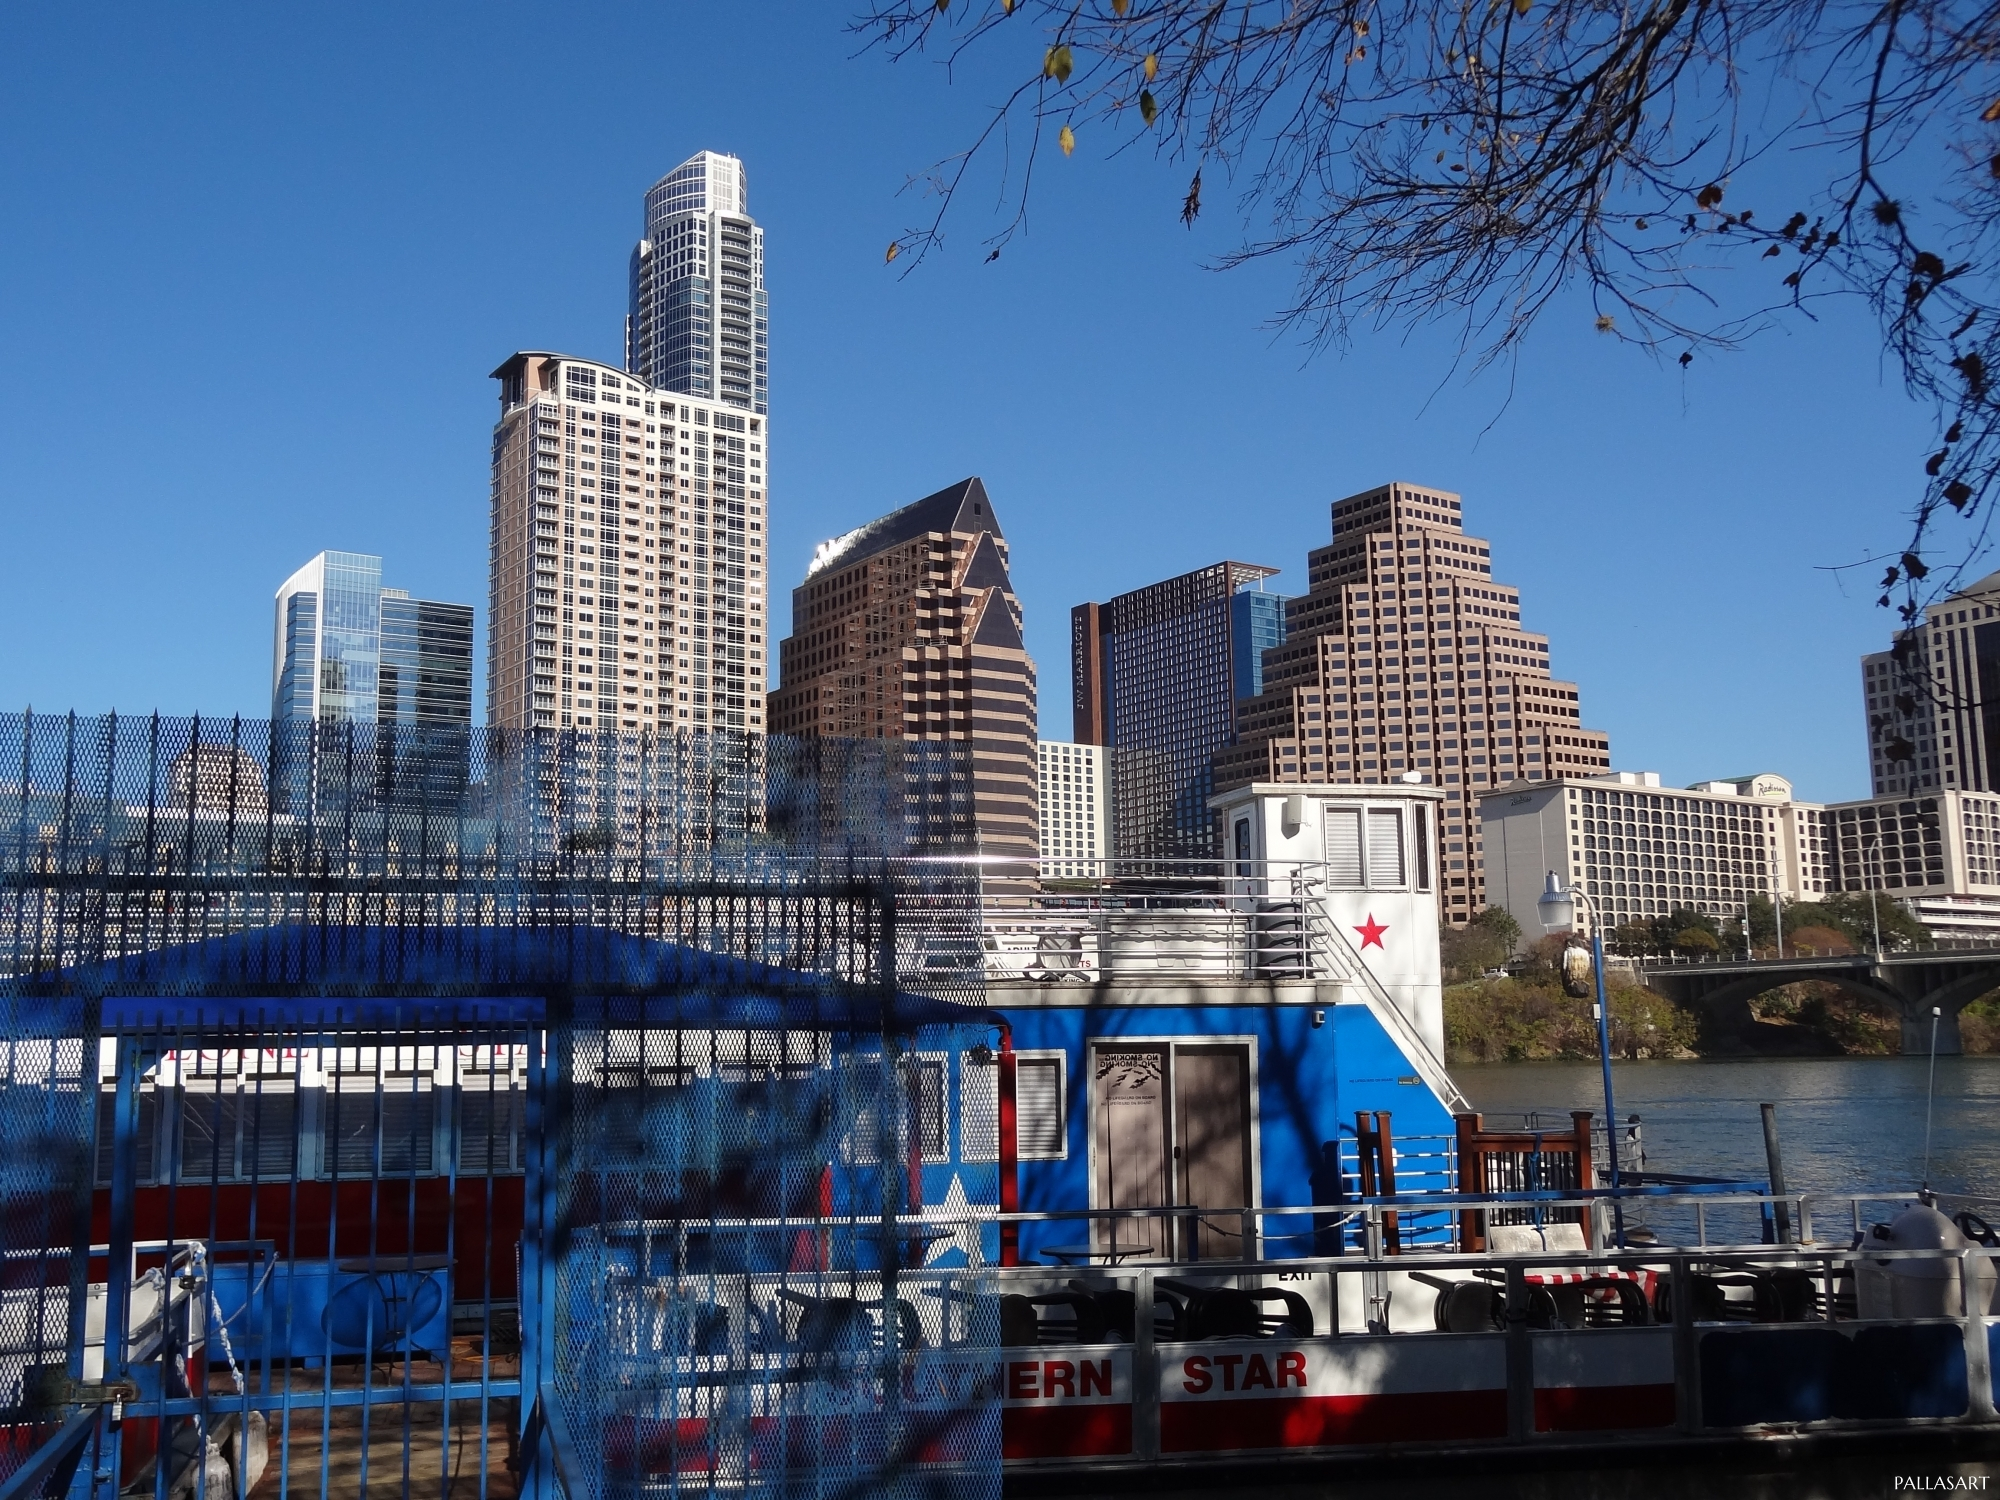 Lone Star Riverboat in Austin, Texas